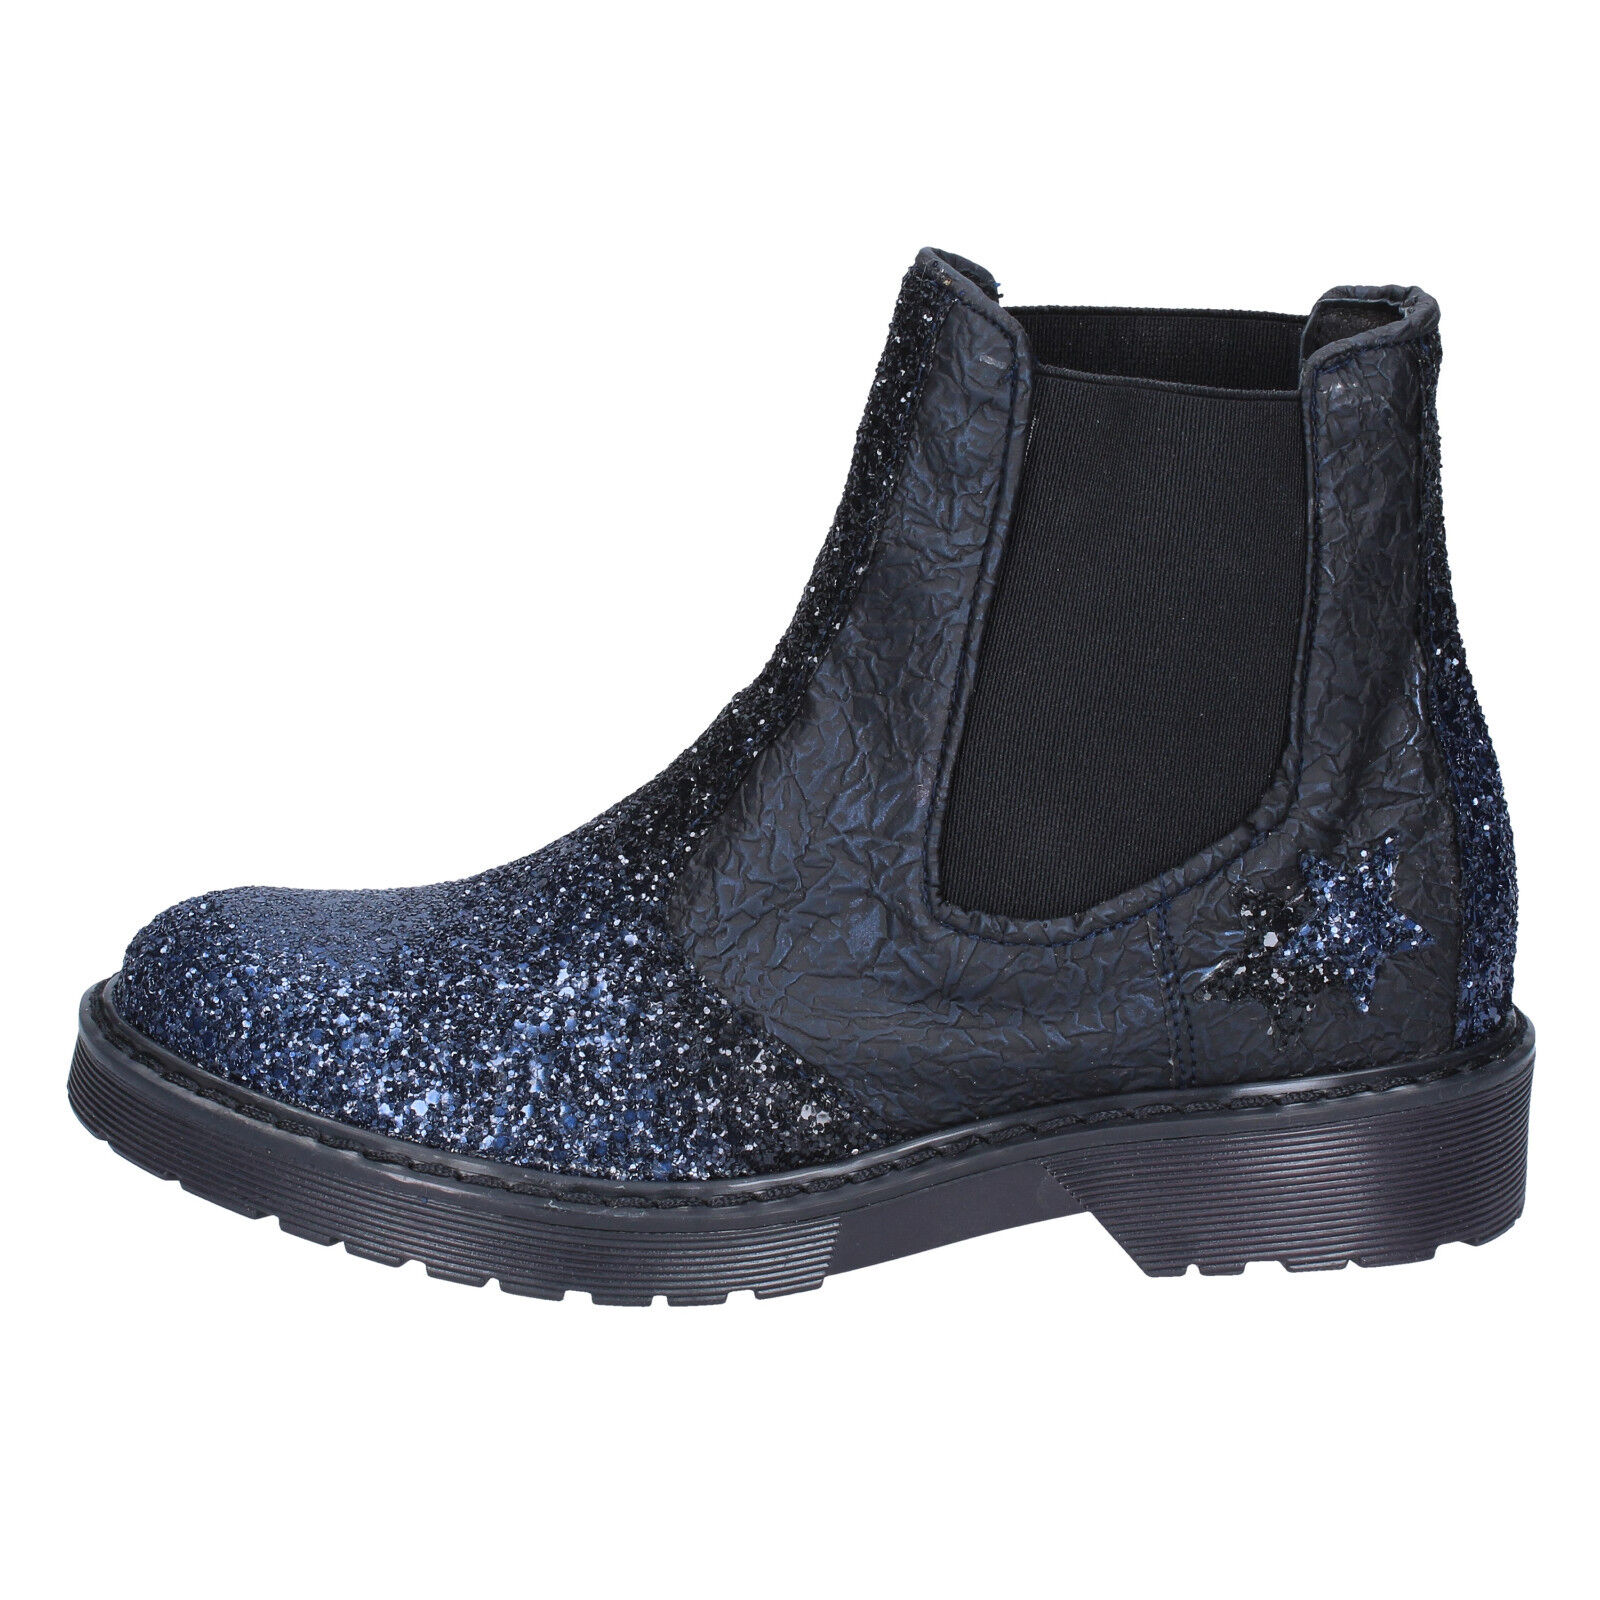 womens shoes 2 STAR 6 () ankle boots blue leather black leather blue glitter BX375-39 fa4db7